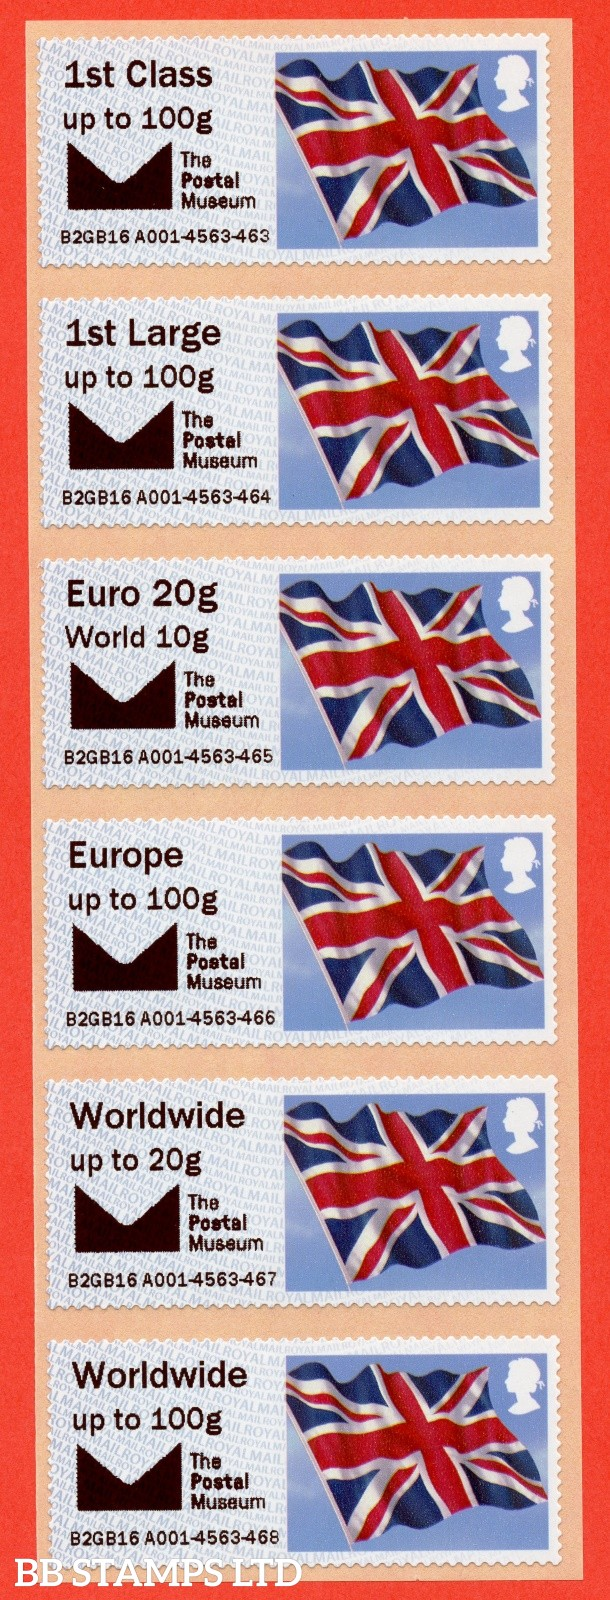 Env logo + The Postal Museum, 1st to WW100g: NO DATE